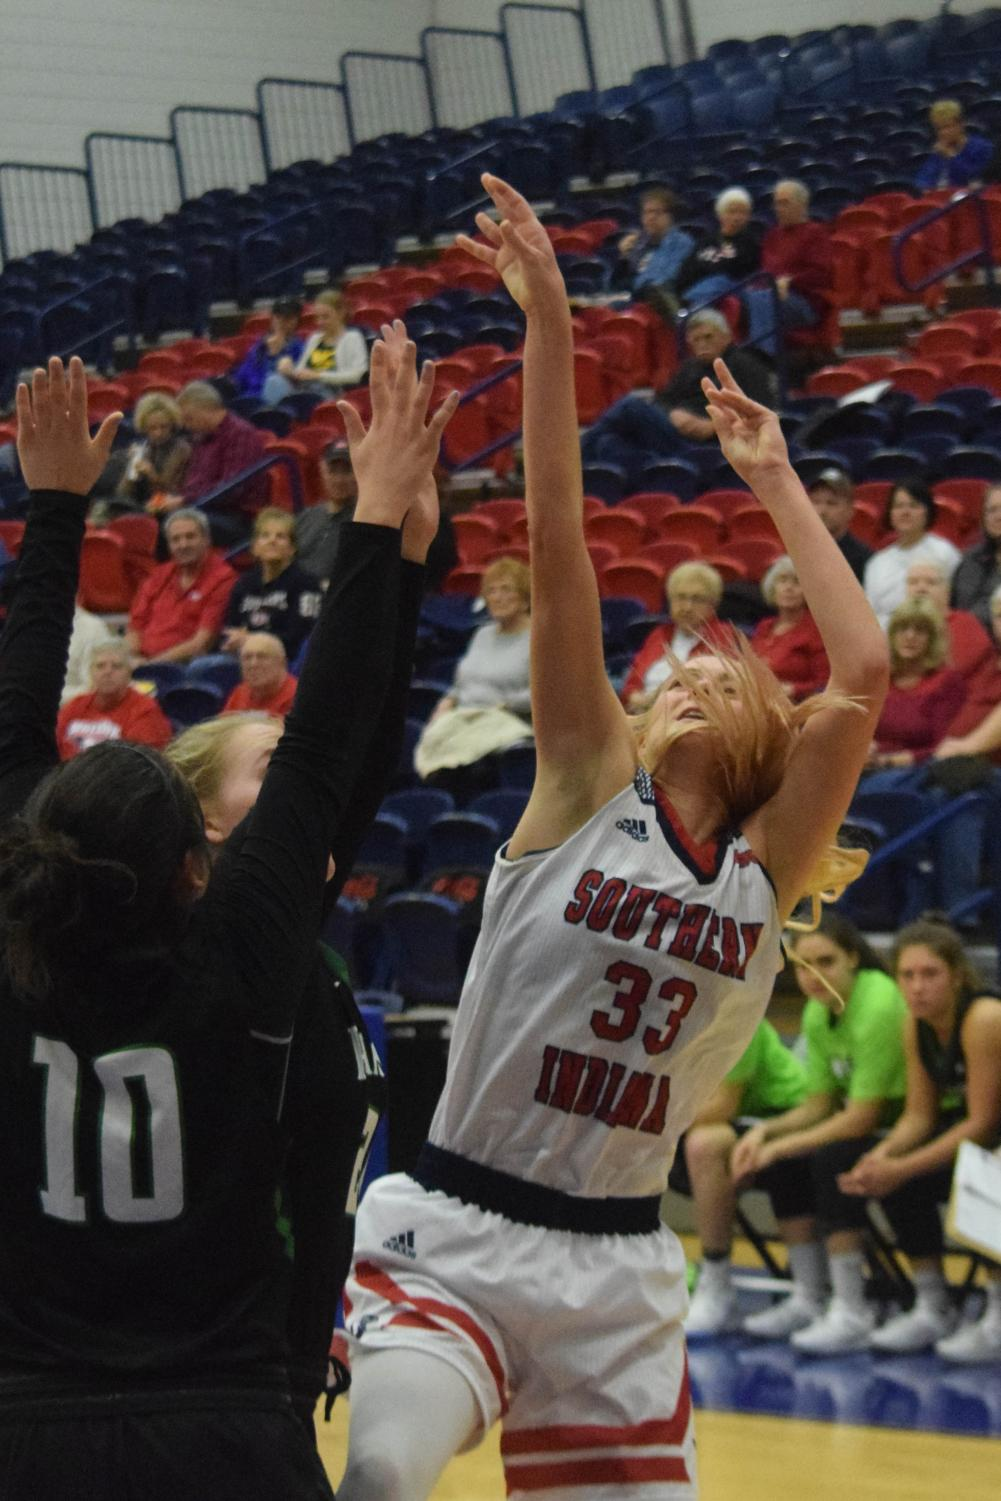 Kaydie+Grooms%2C+senior+guard%2C+shoots+the+ball+over+a+Parkside+player